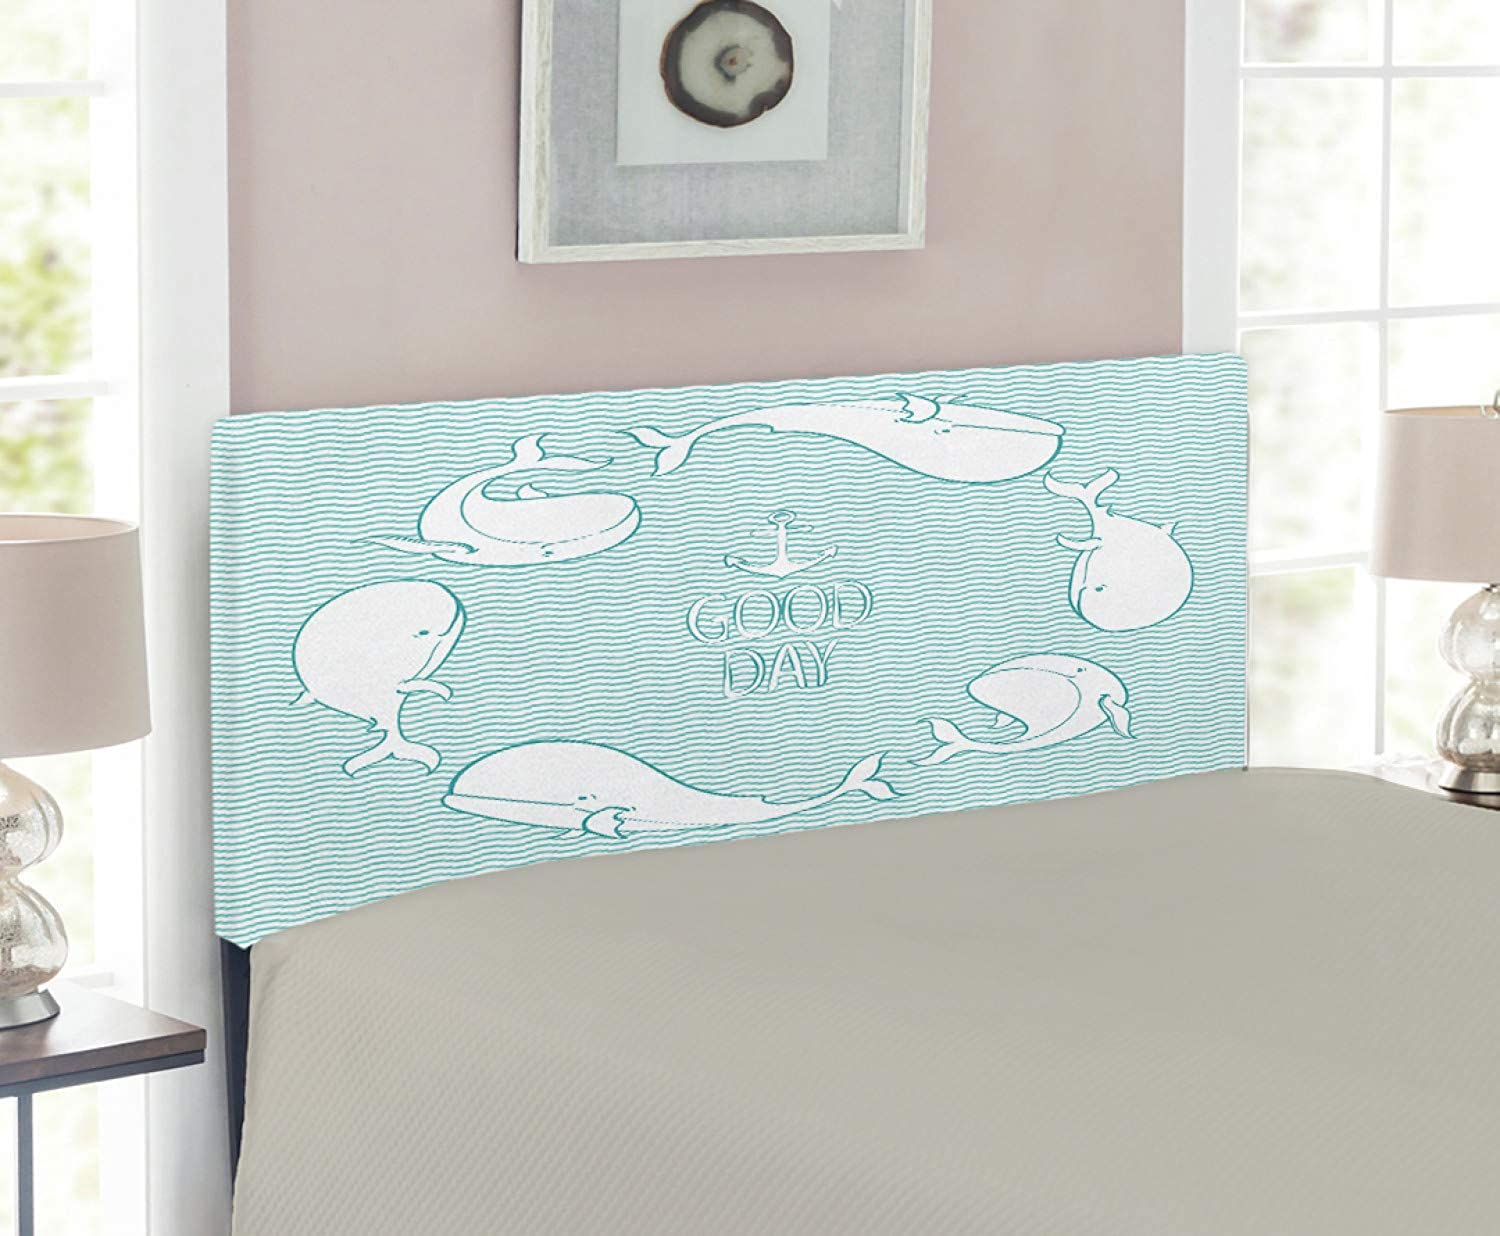 Lunarable Anchor Headboard for Twin Size Bed, Anchor and Good Day Text in Frame of Whales Different Poses Wavy Water Surface, Upholstered Decorative Metal Headboard with Memory Foam, Mint Green White